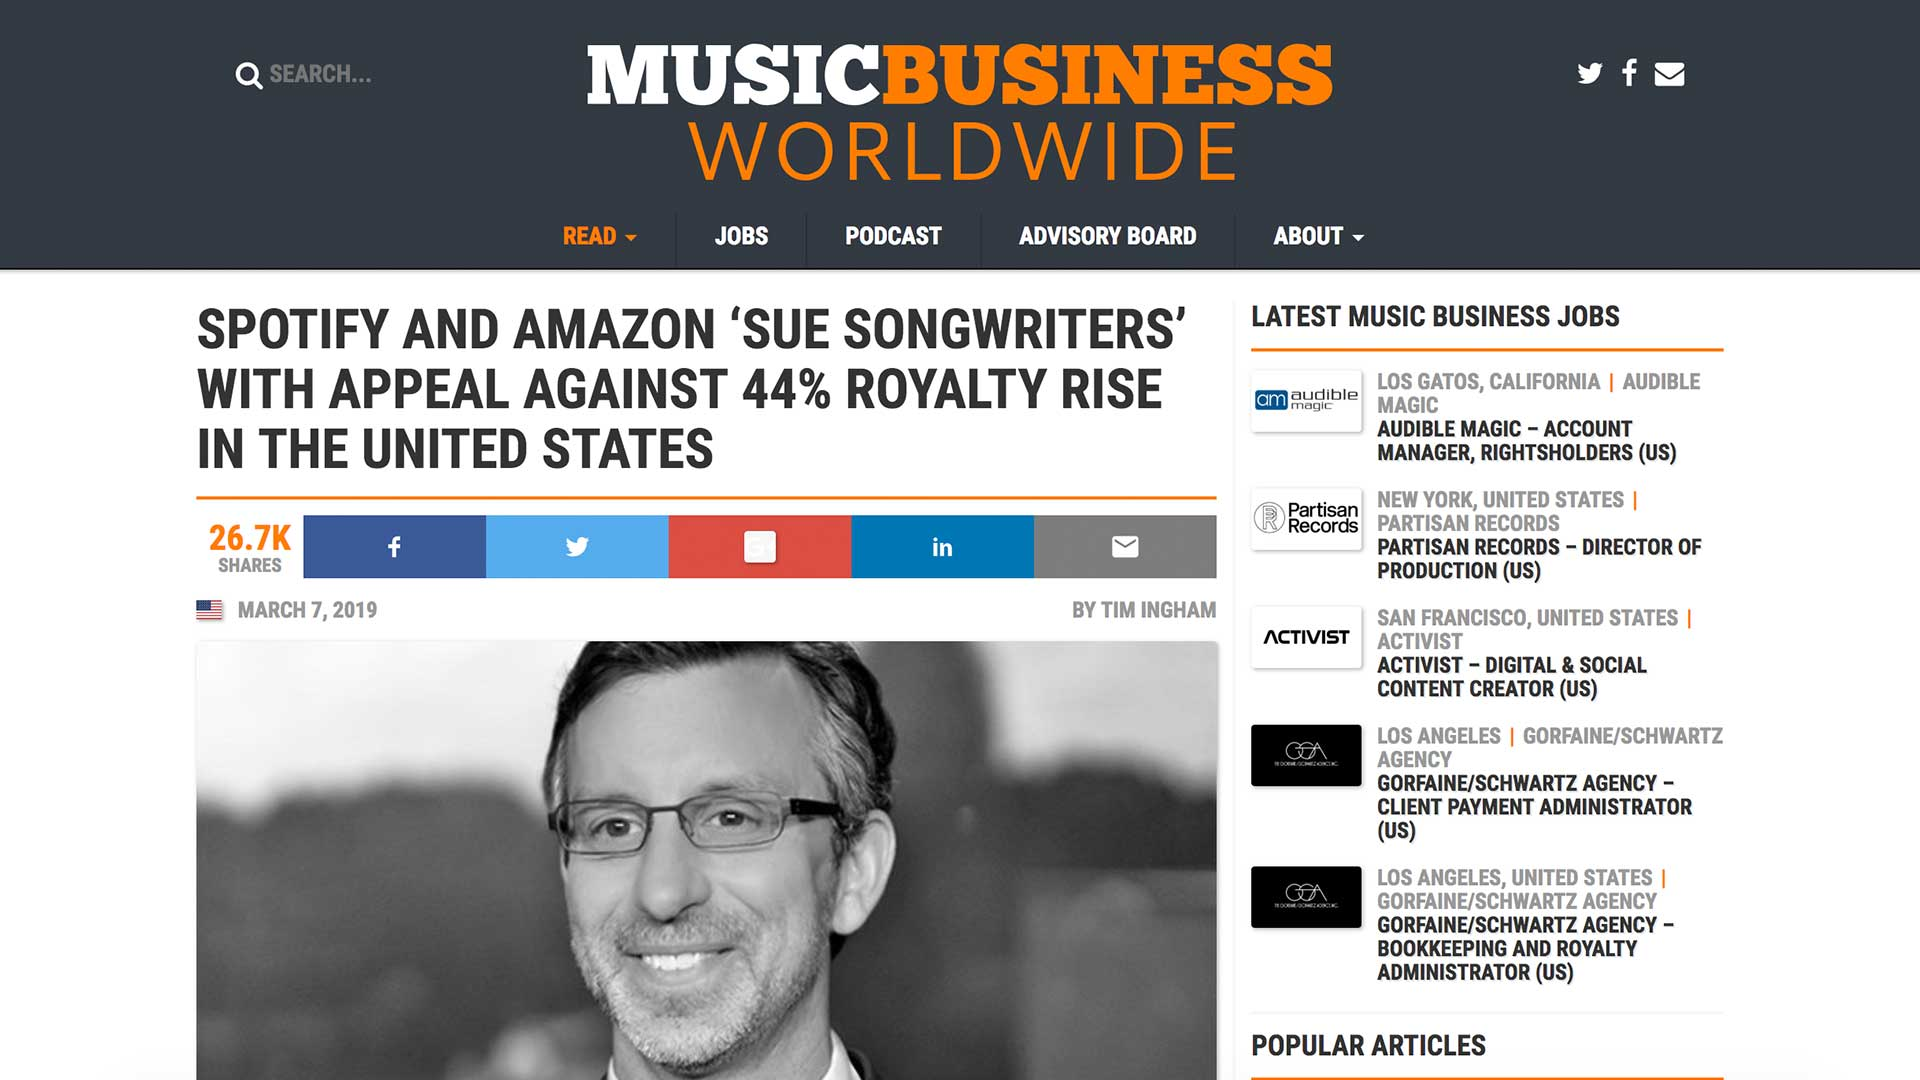 Fairness Rocks News SPOTIFY AND AMAZON 'SUE SONGWRITERS' WITH APPEAL AGAINST 44% ROYALTY RISE IN THE UNITED STATES